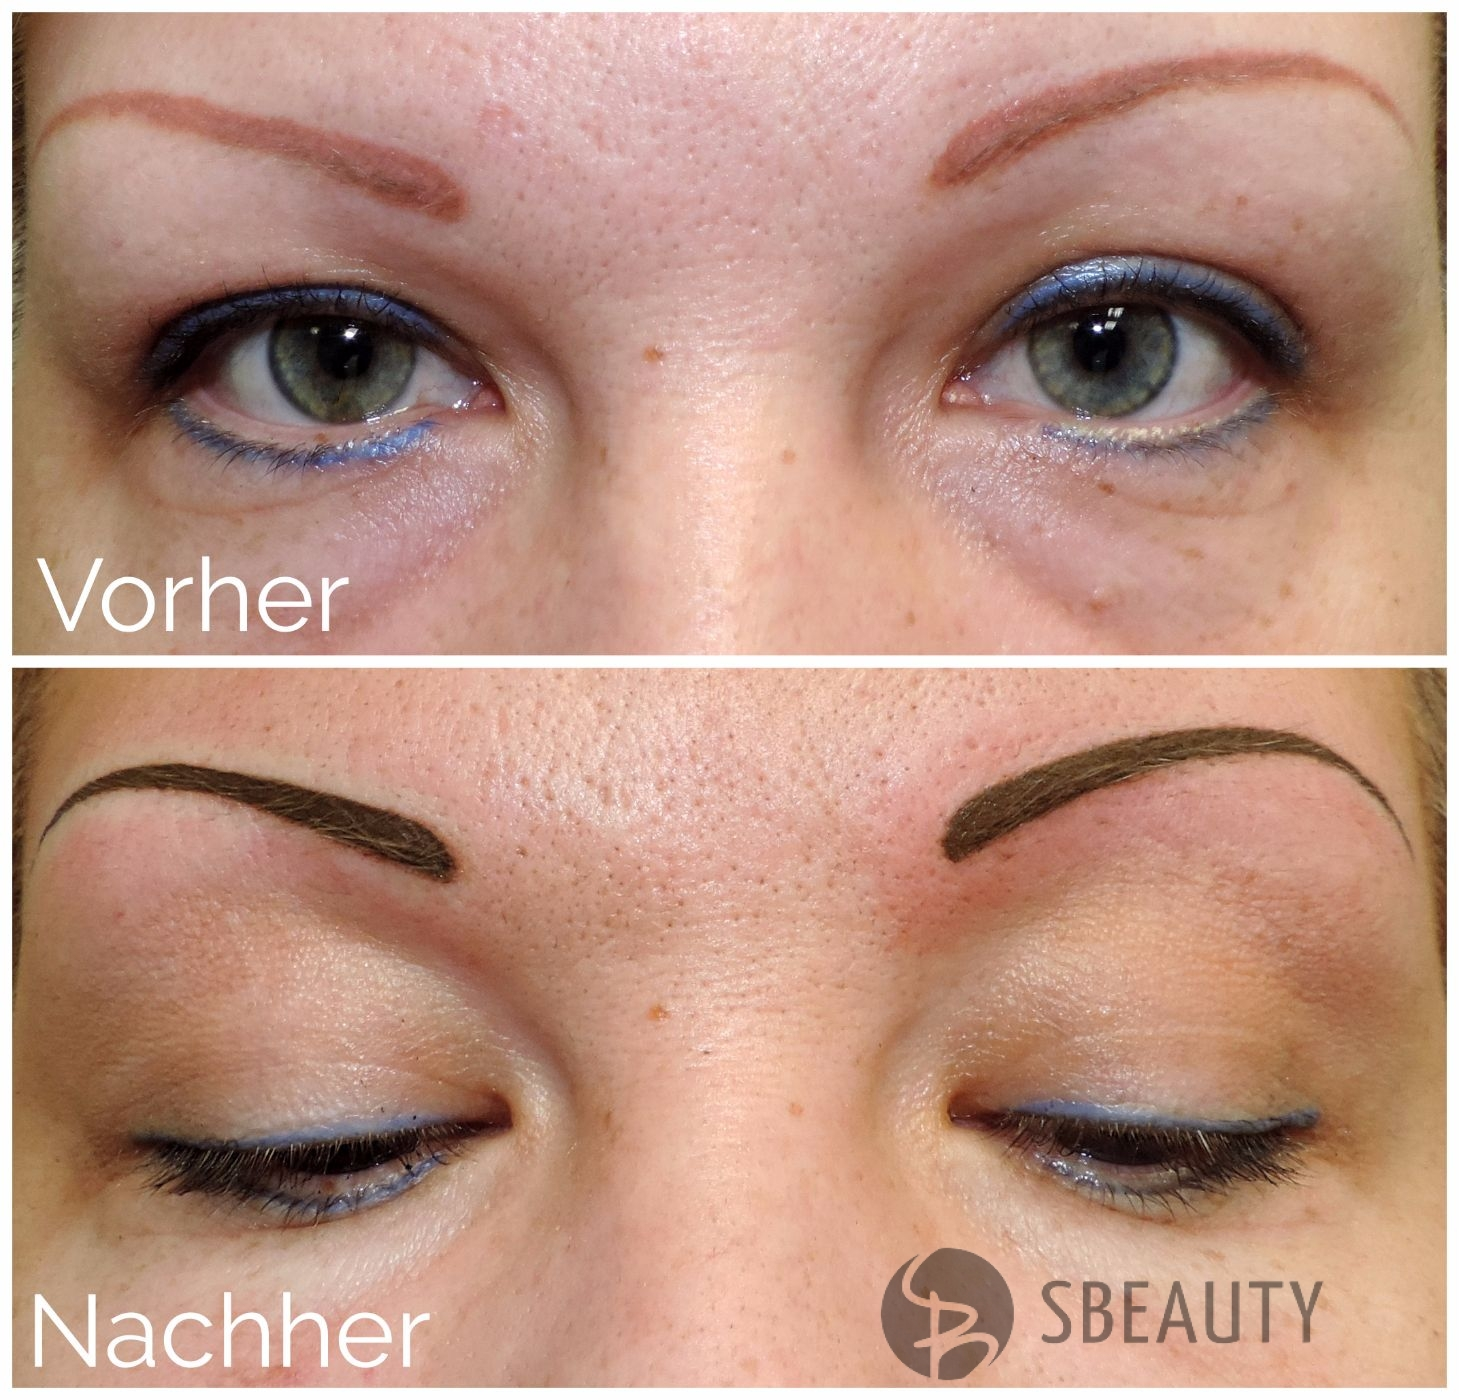 Permanent Make-Up vollschattierung  - Form nach Kundenwunsch.